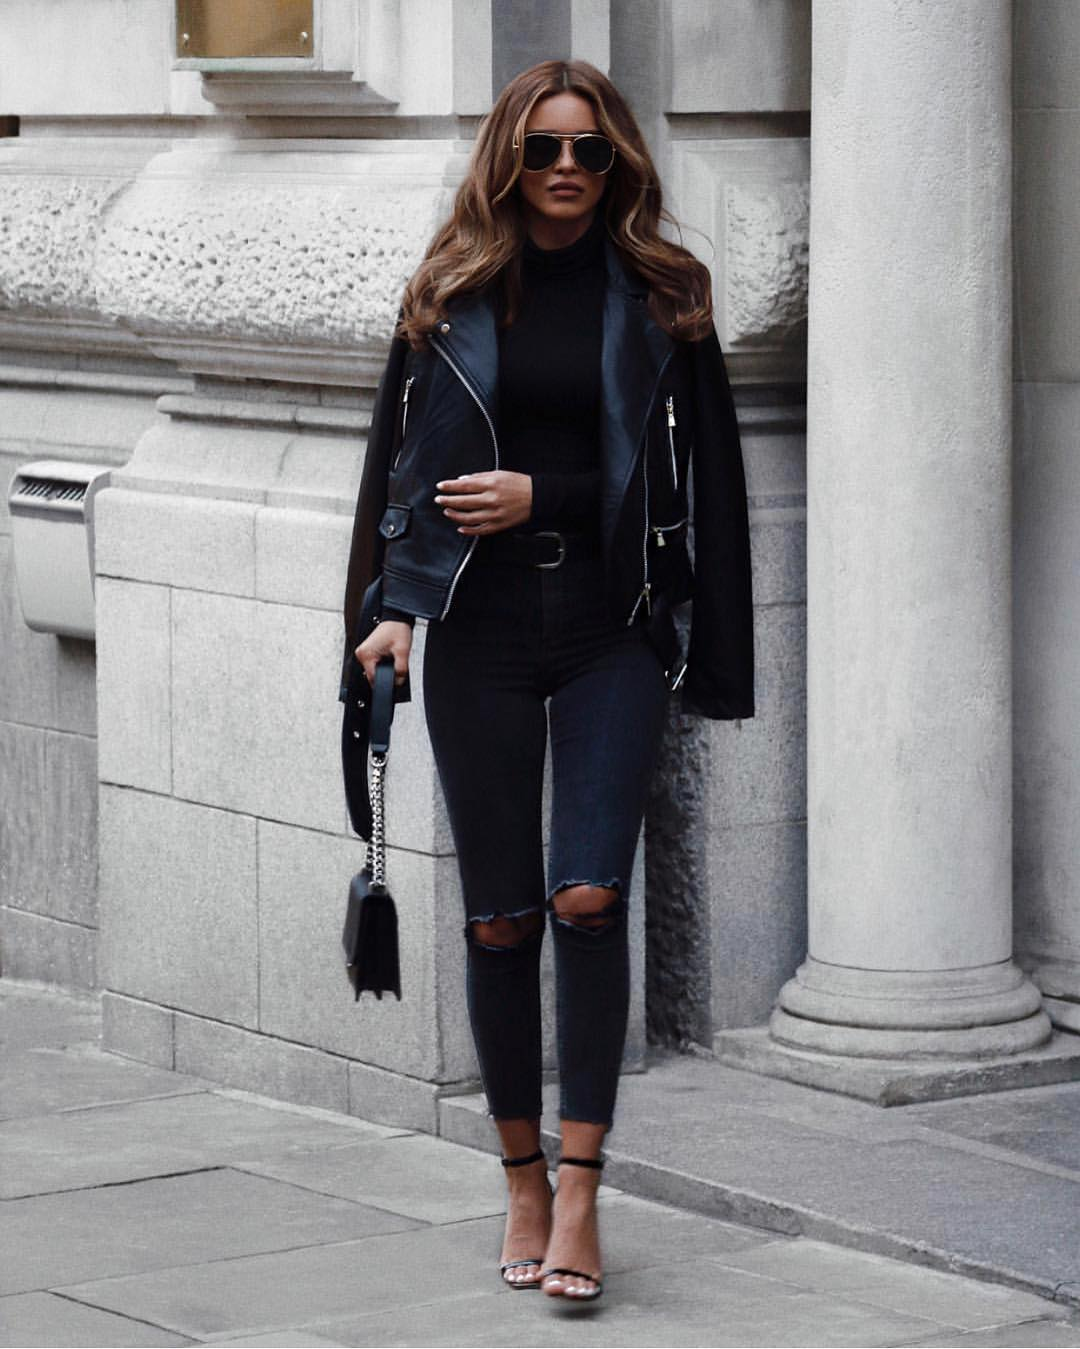 All Black Street Look: Leather Jacket, Bodysuit, Ripped Jeans And Sandals 2021